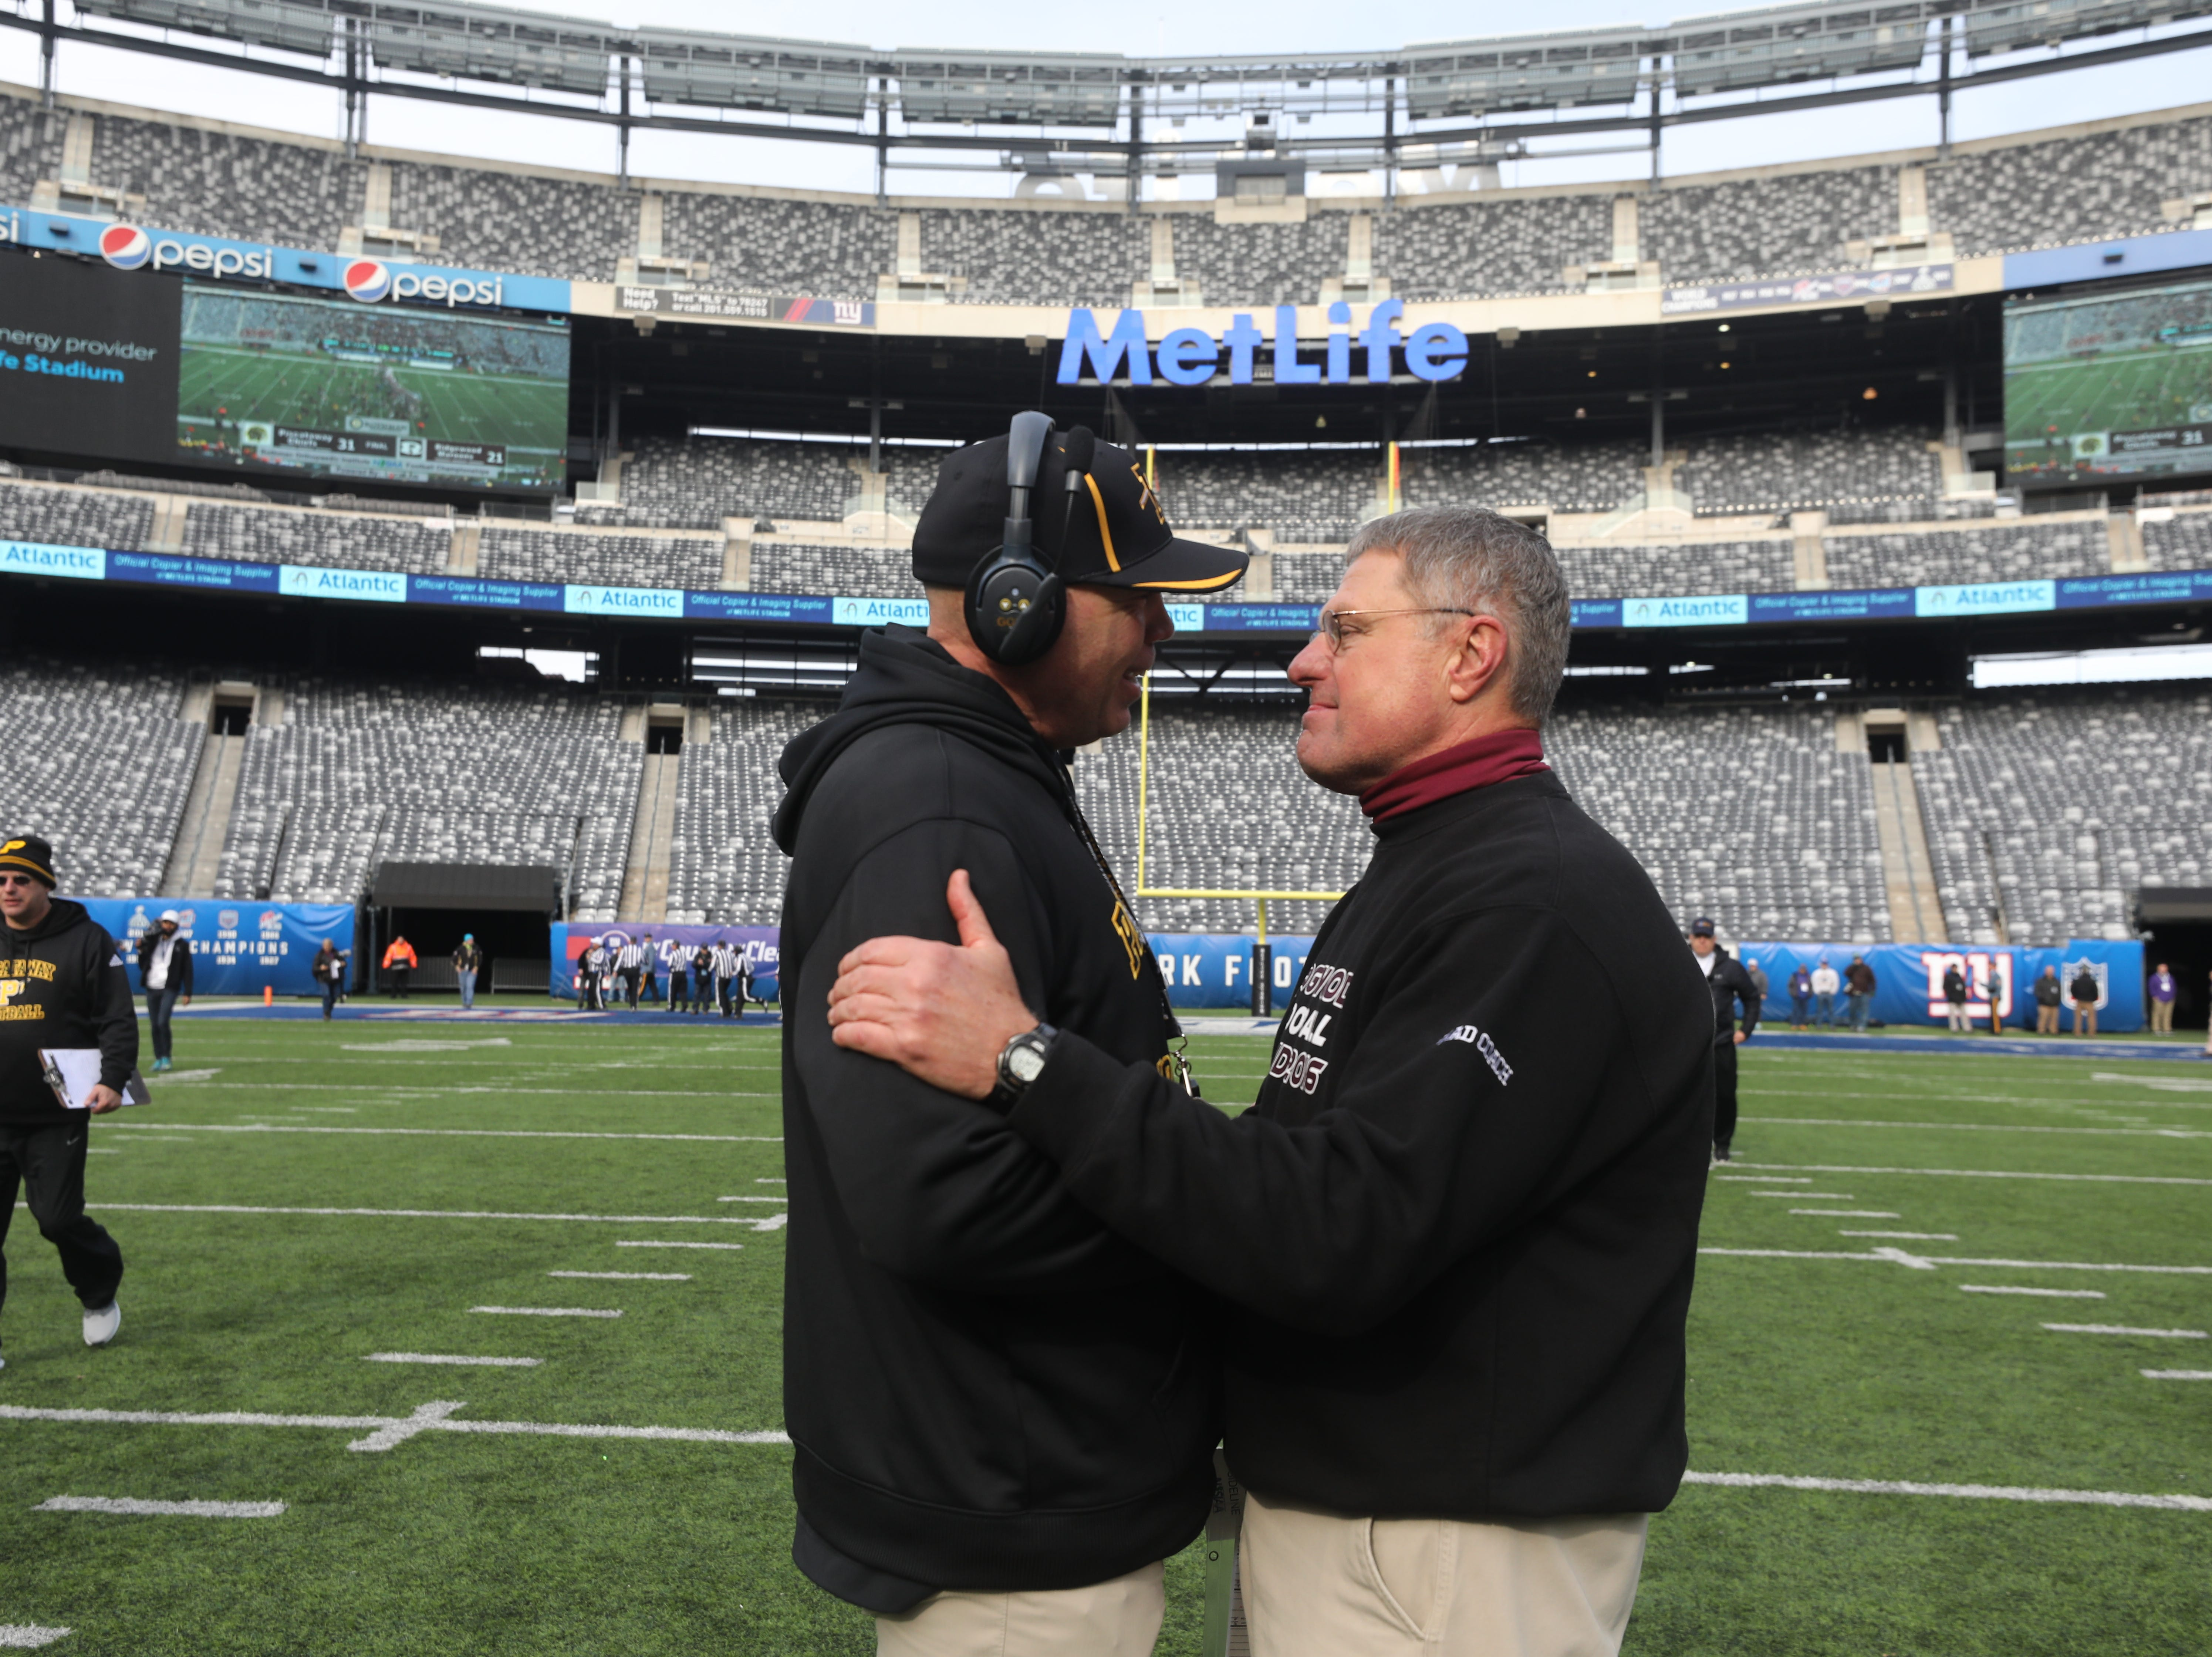 Head coaches Daniel Higgins of Piscataway and Chuck Johnson of Ridgewood get together at the end of the game.